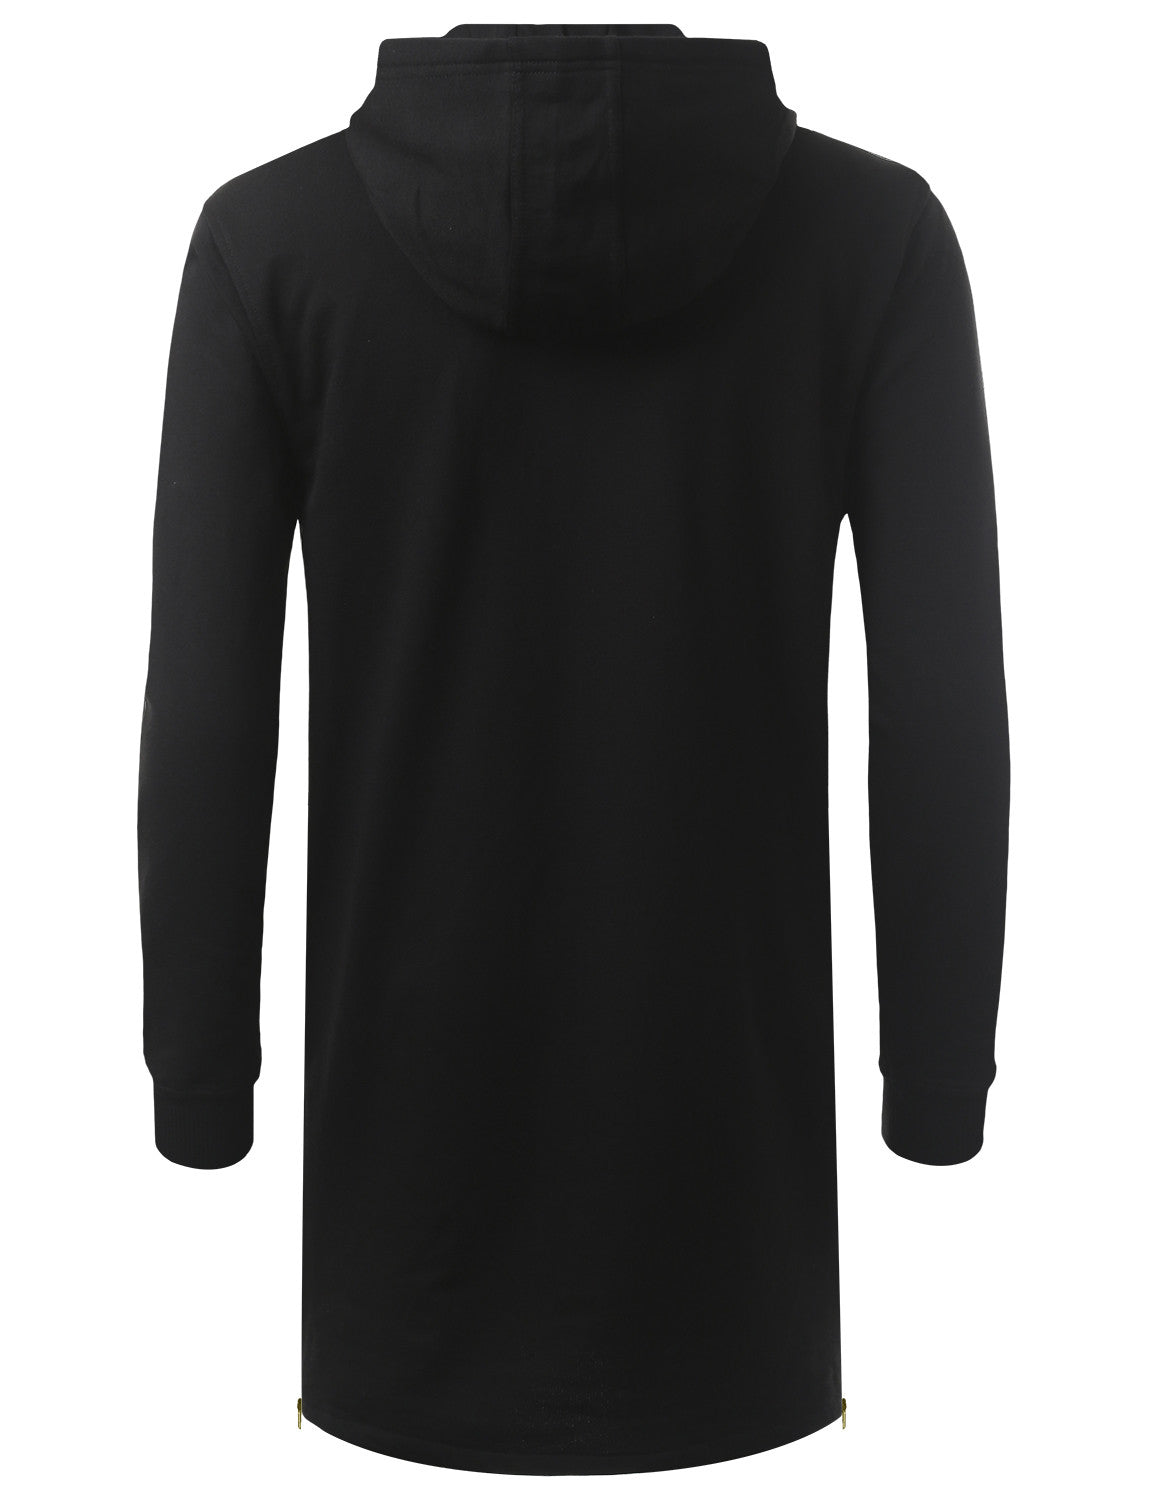 BLACK French Terry Longline Hoodie Jacket - URBANCREWS